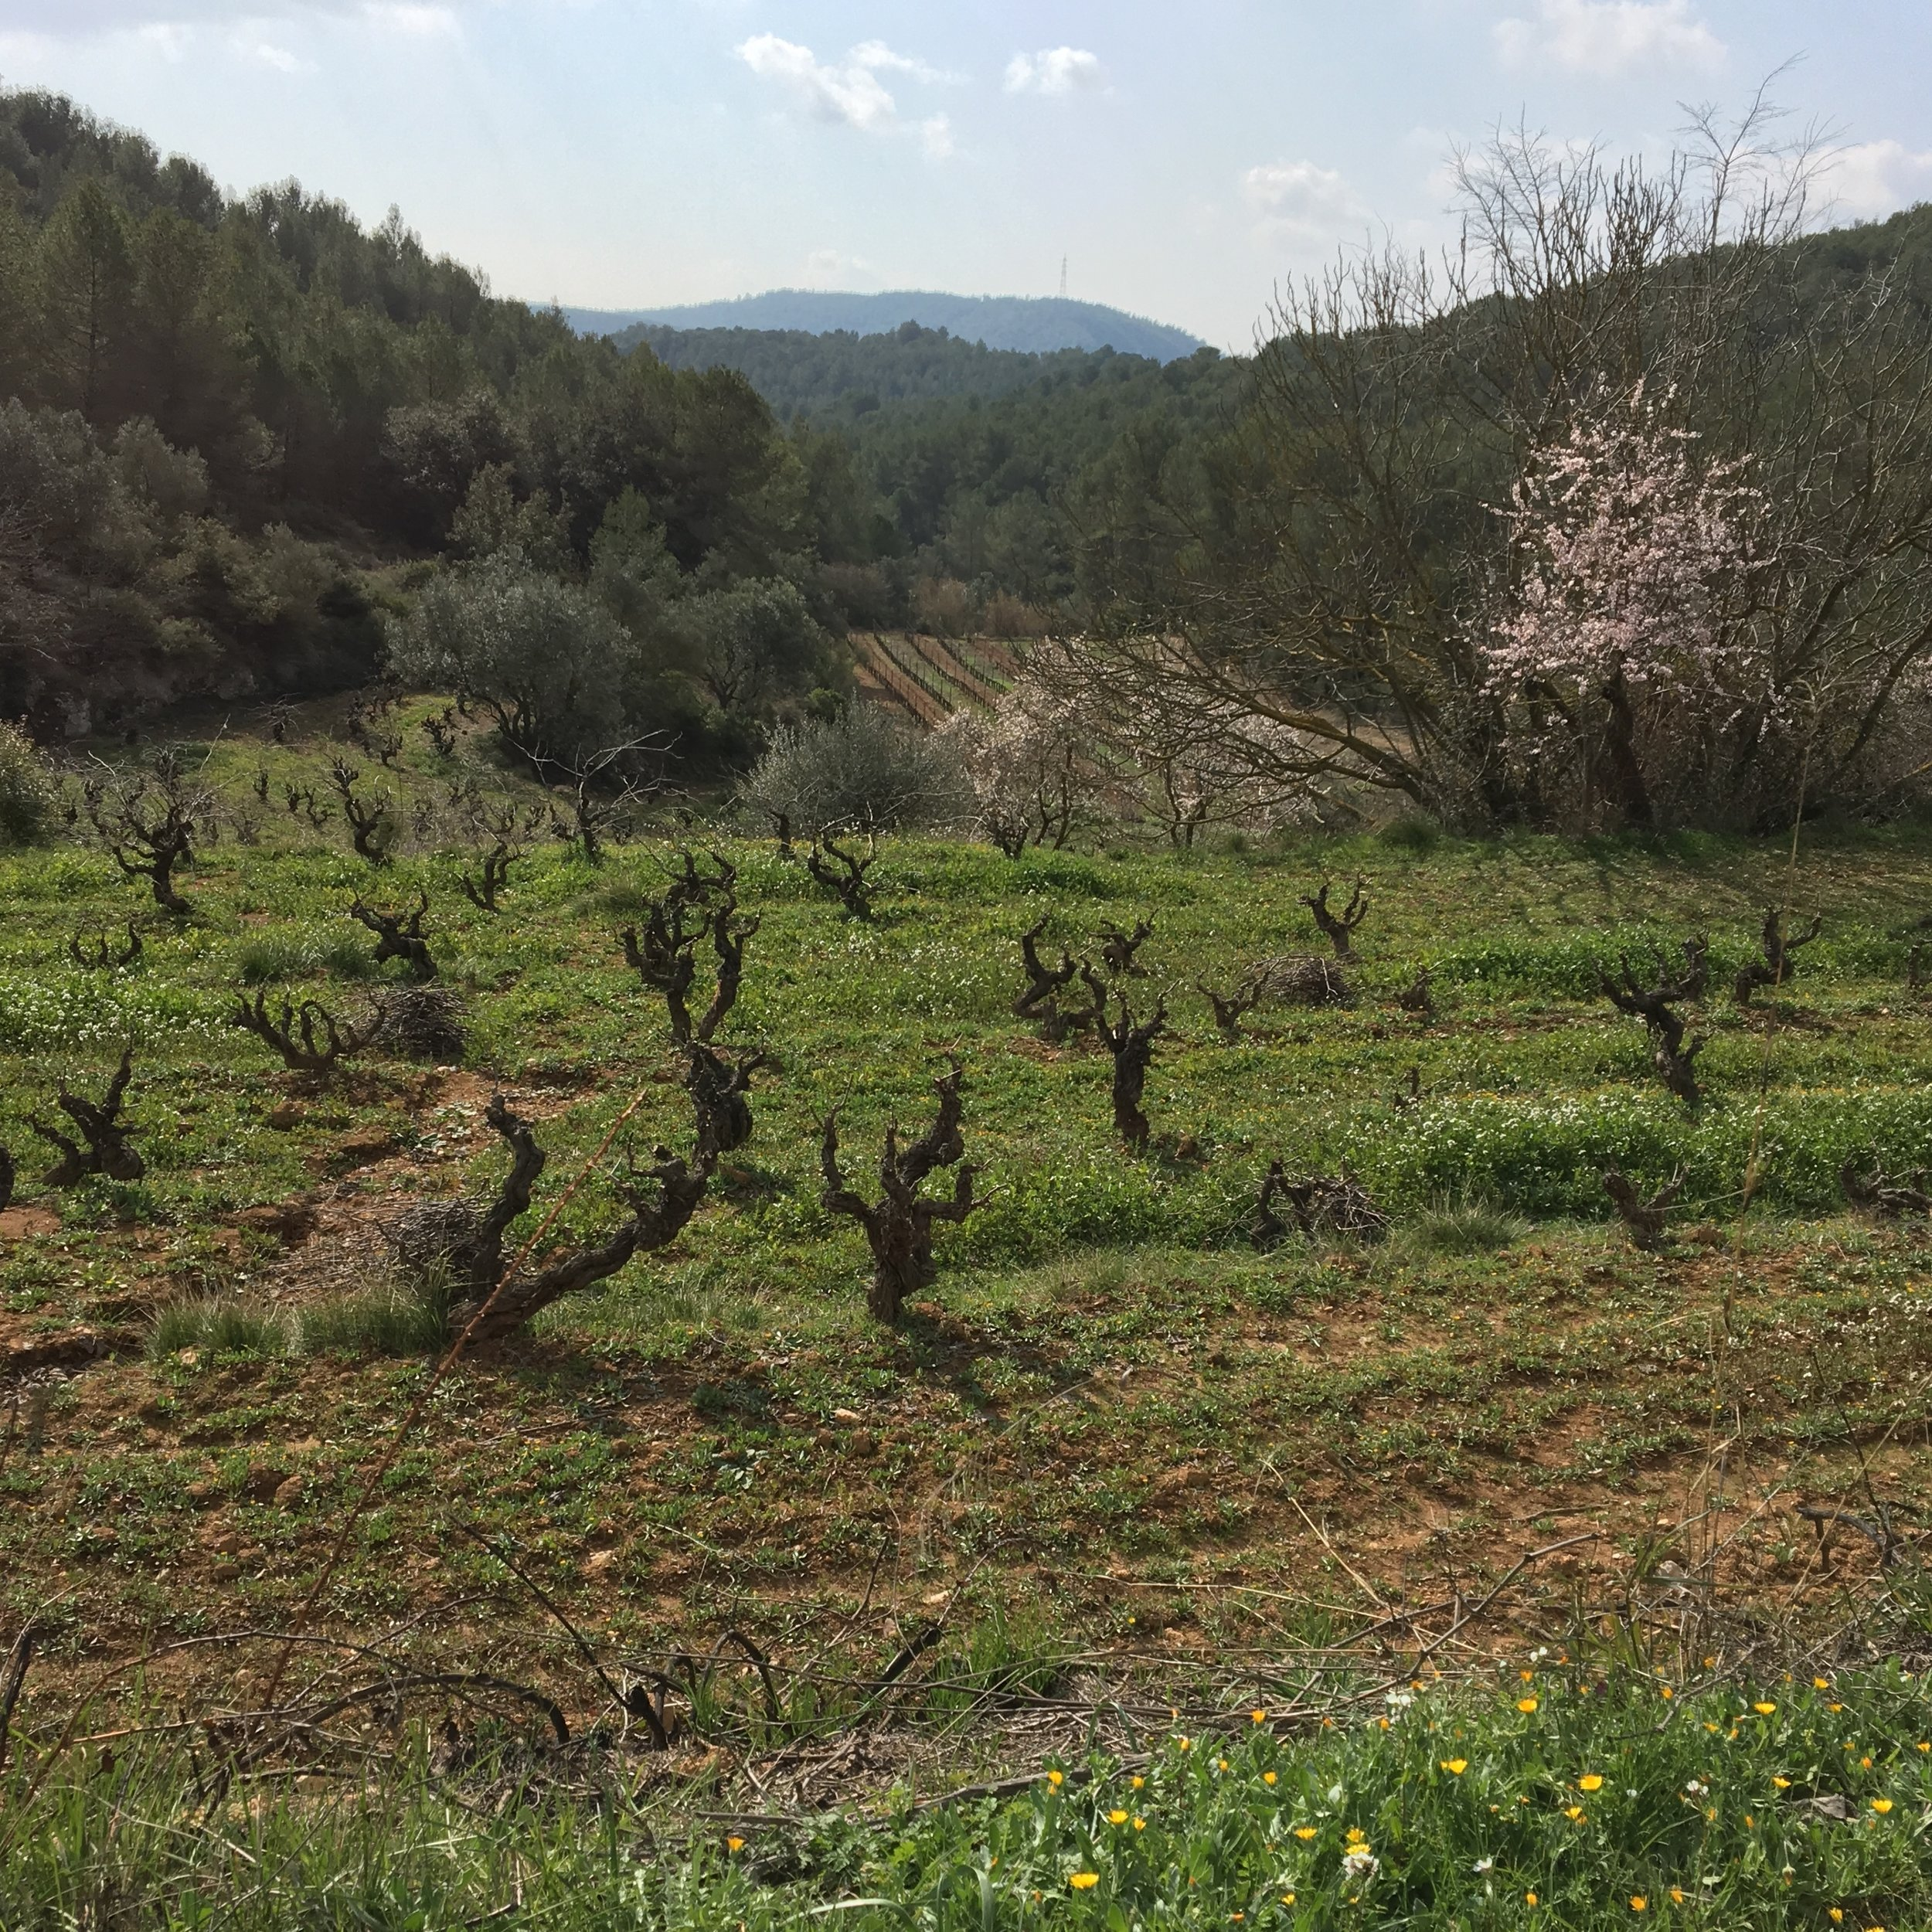 Almond blossom and old vines in February. Raimon is experimenting with leaving ground cover intact as he moves towards biodynamic agriculture.